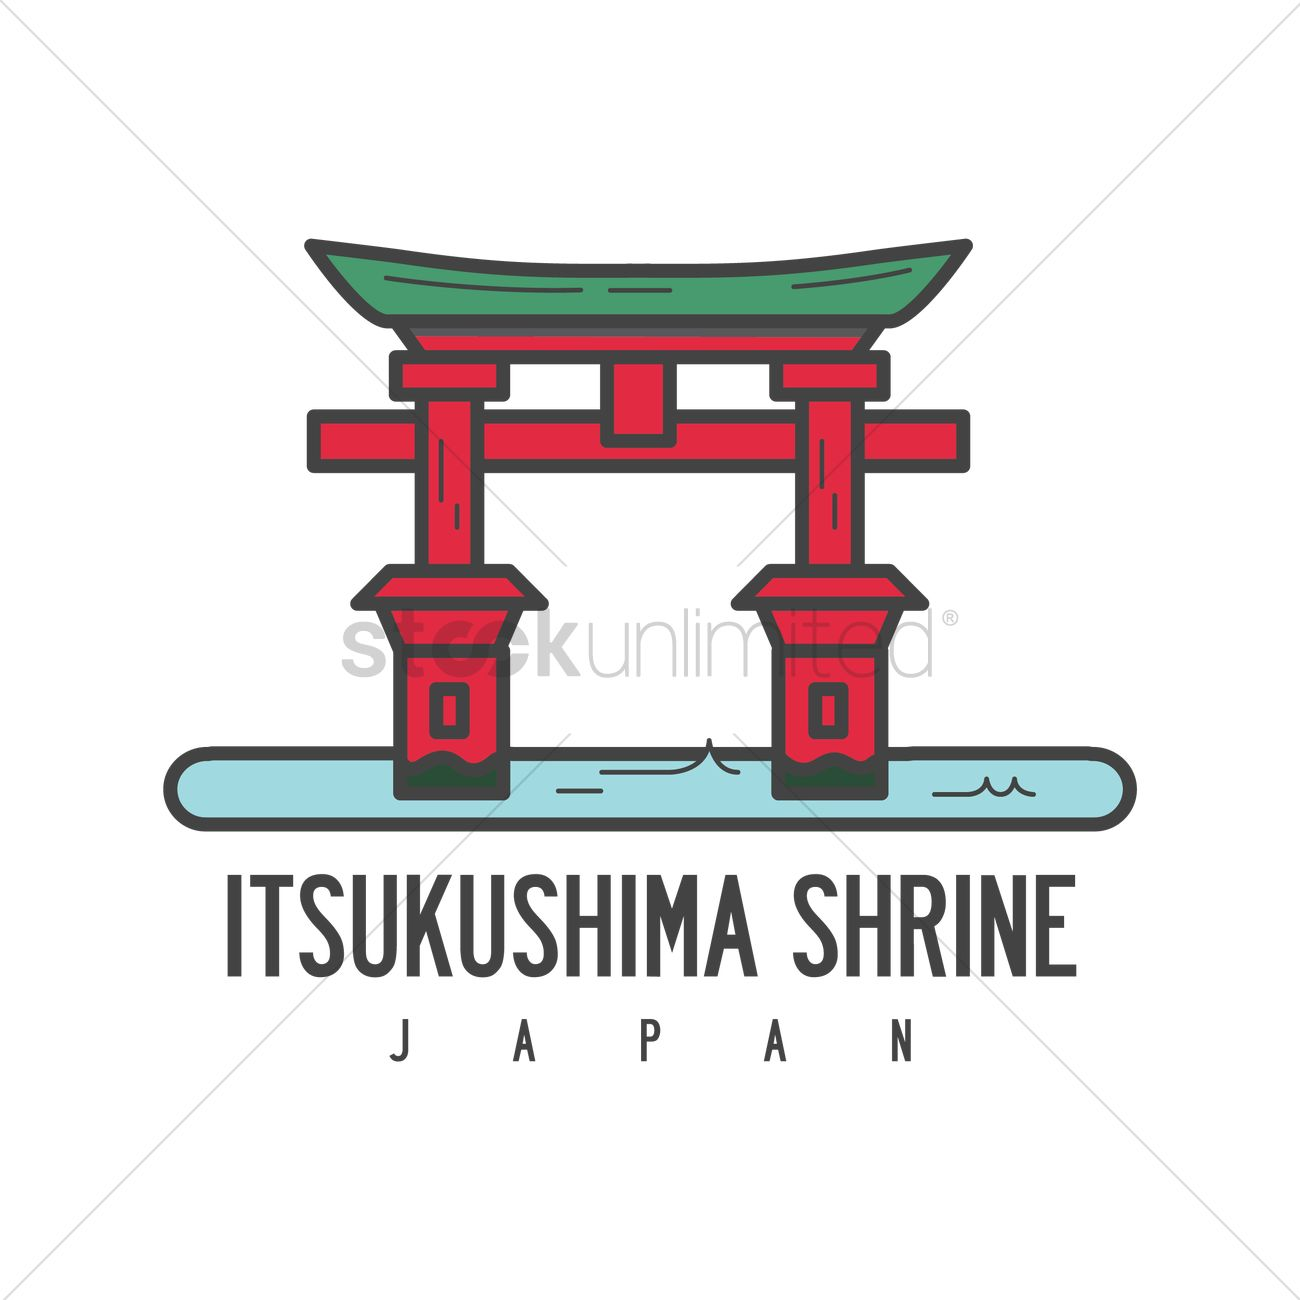 itsukushima shrine vector image 1589509 stockunlimited rh stockunlimited com shrine clipart png shine clipart